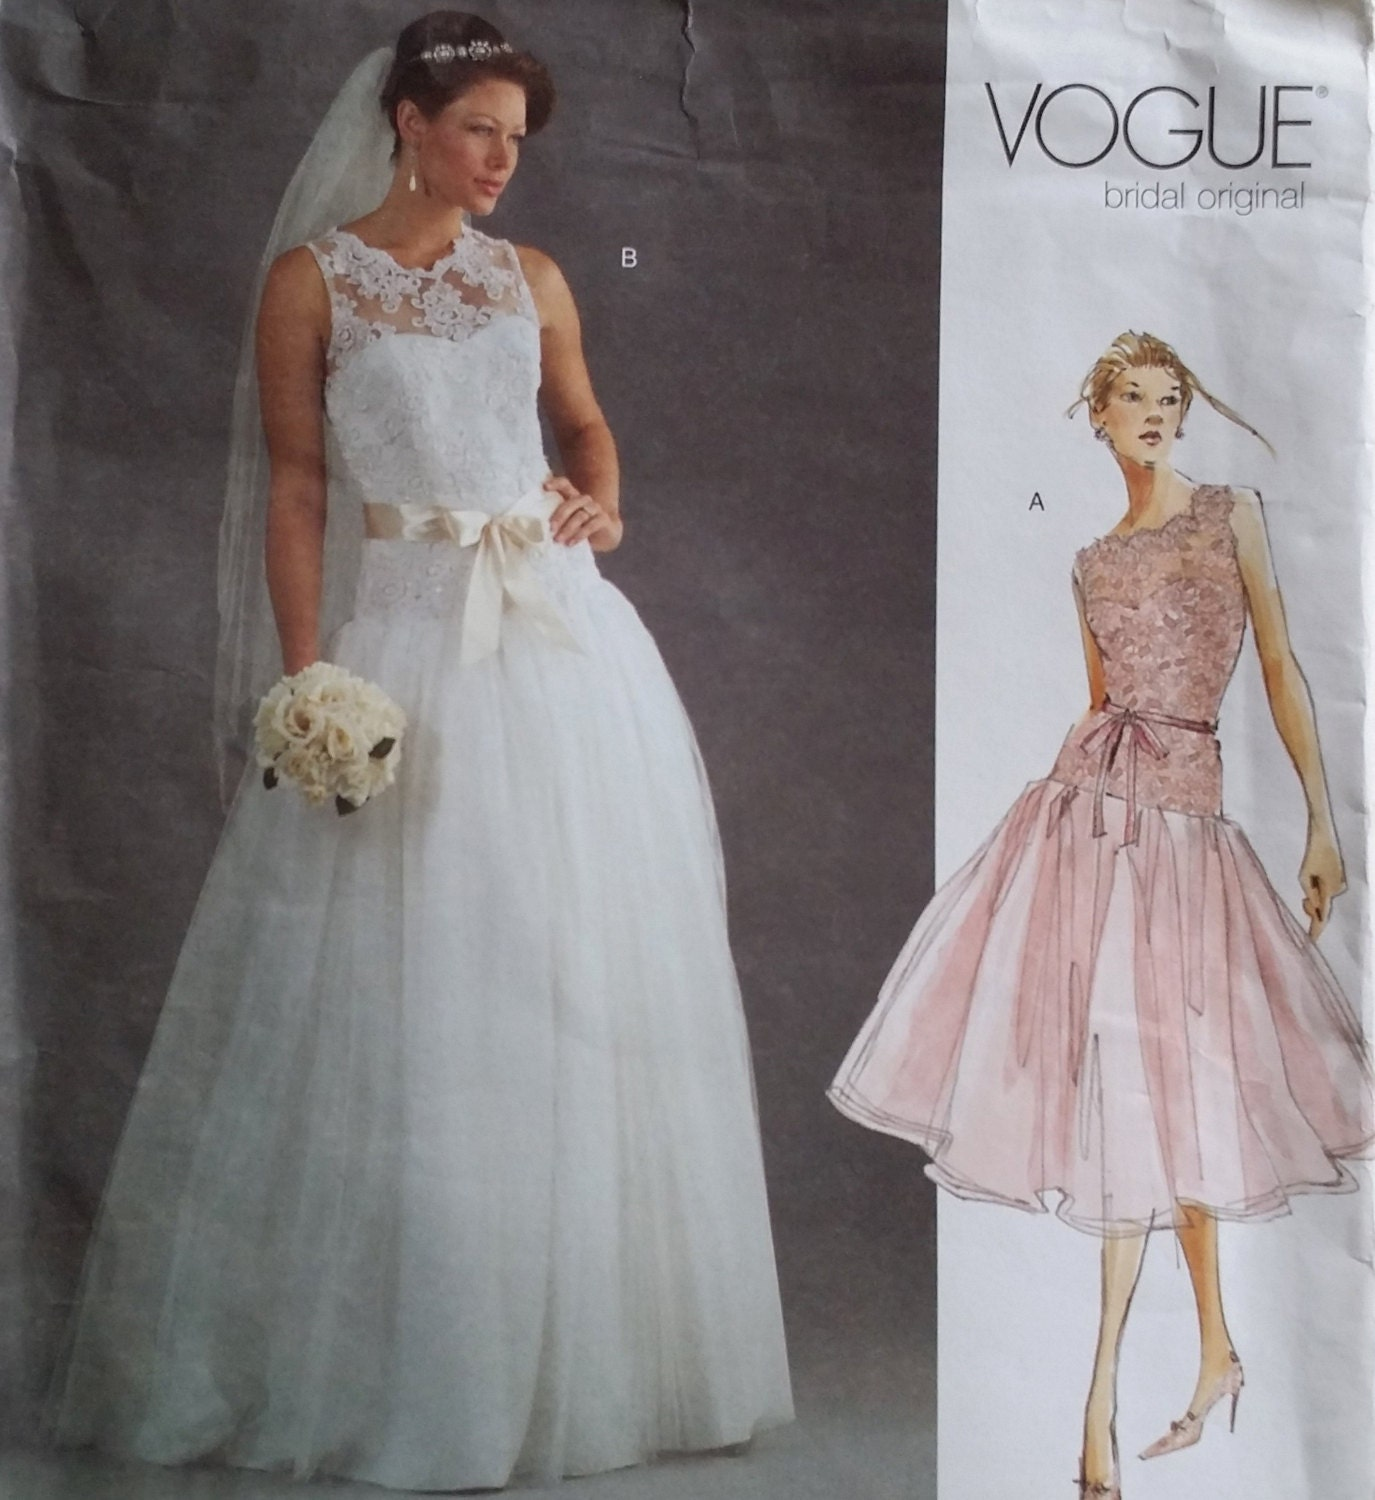 Vogue 2892 bridal original size 12 16 drop waist lace ballerina vogue 2892 bridal original size 12 16 drop waist lace ballerina tulle wedding gown sewing pattern 2006 uncut rare ombrellifo Images